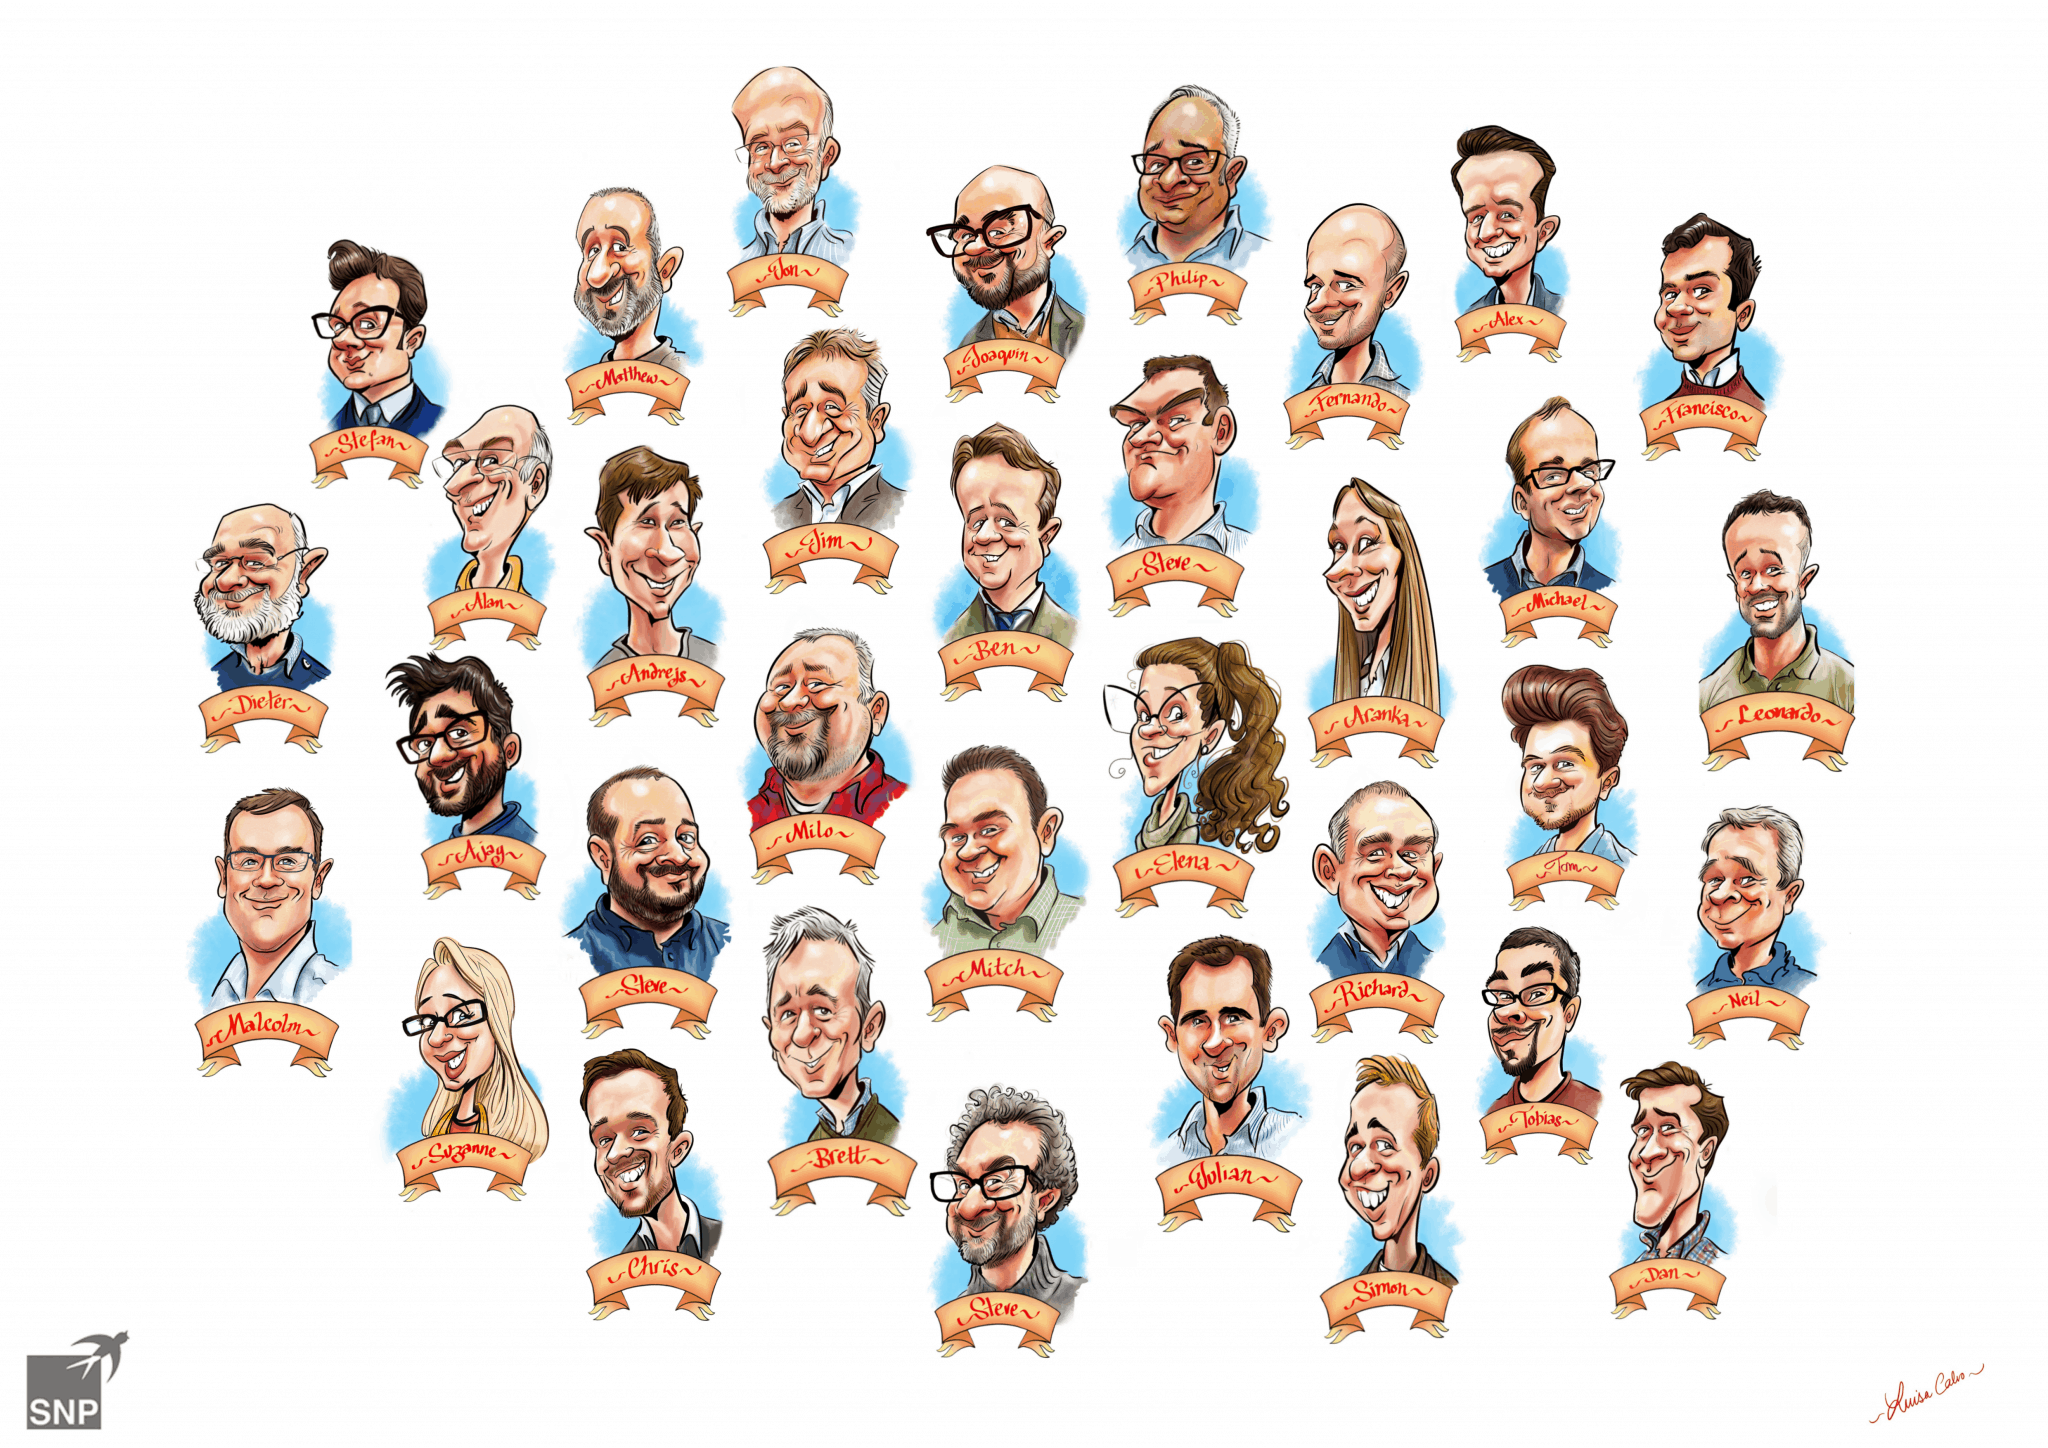 GROUP CARICATURE FROM PHOTOS BY LUISA CALVO